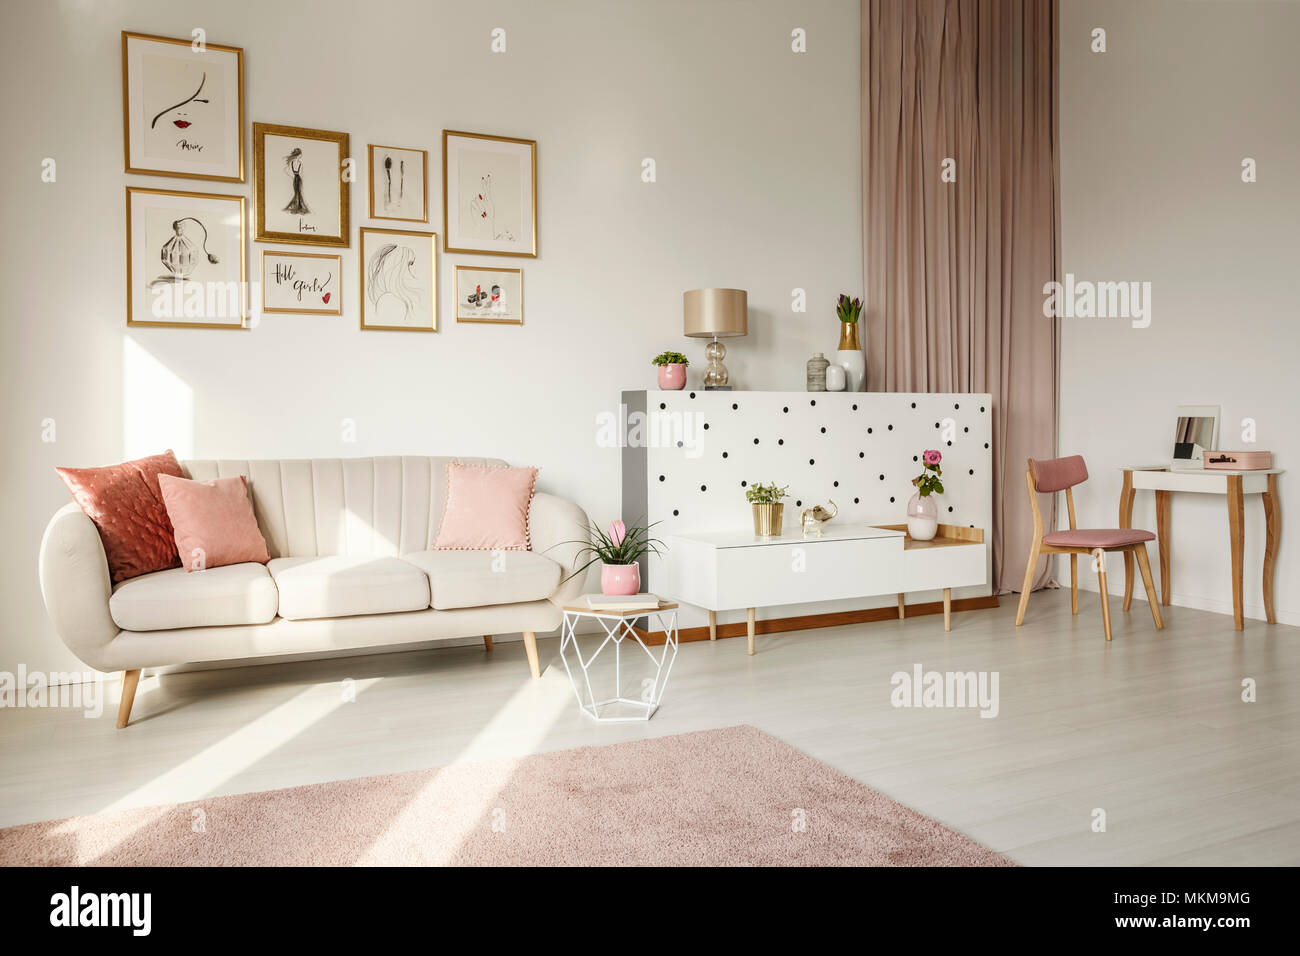 Pink flower on table near sofa in feminine living room interior with ...